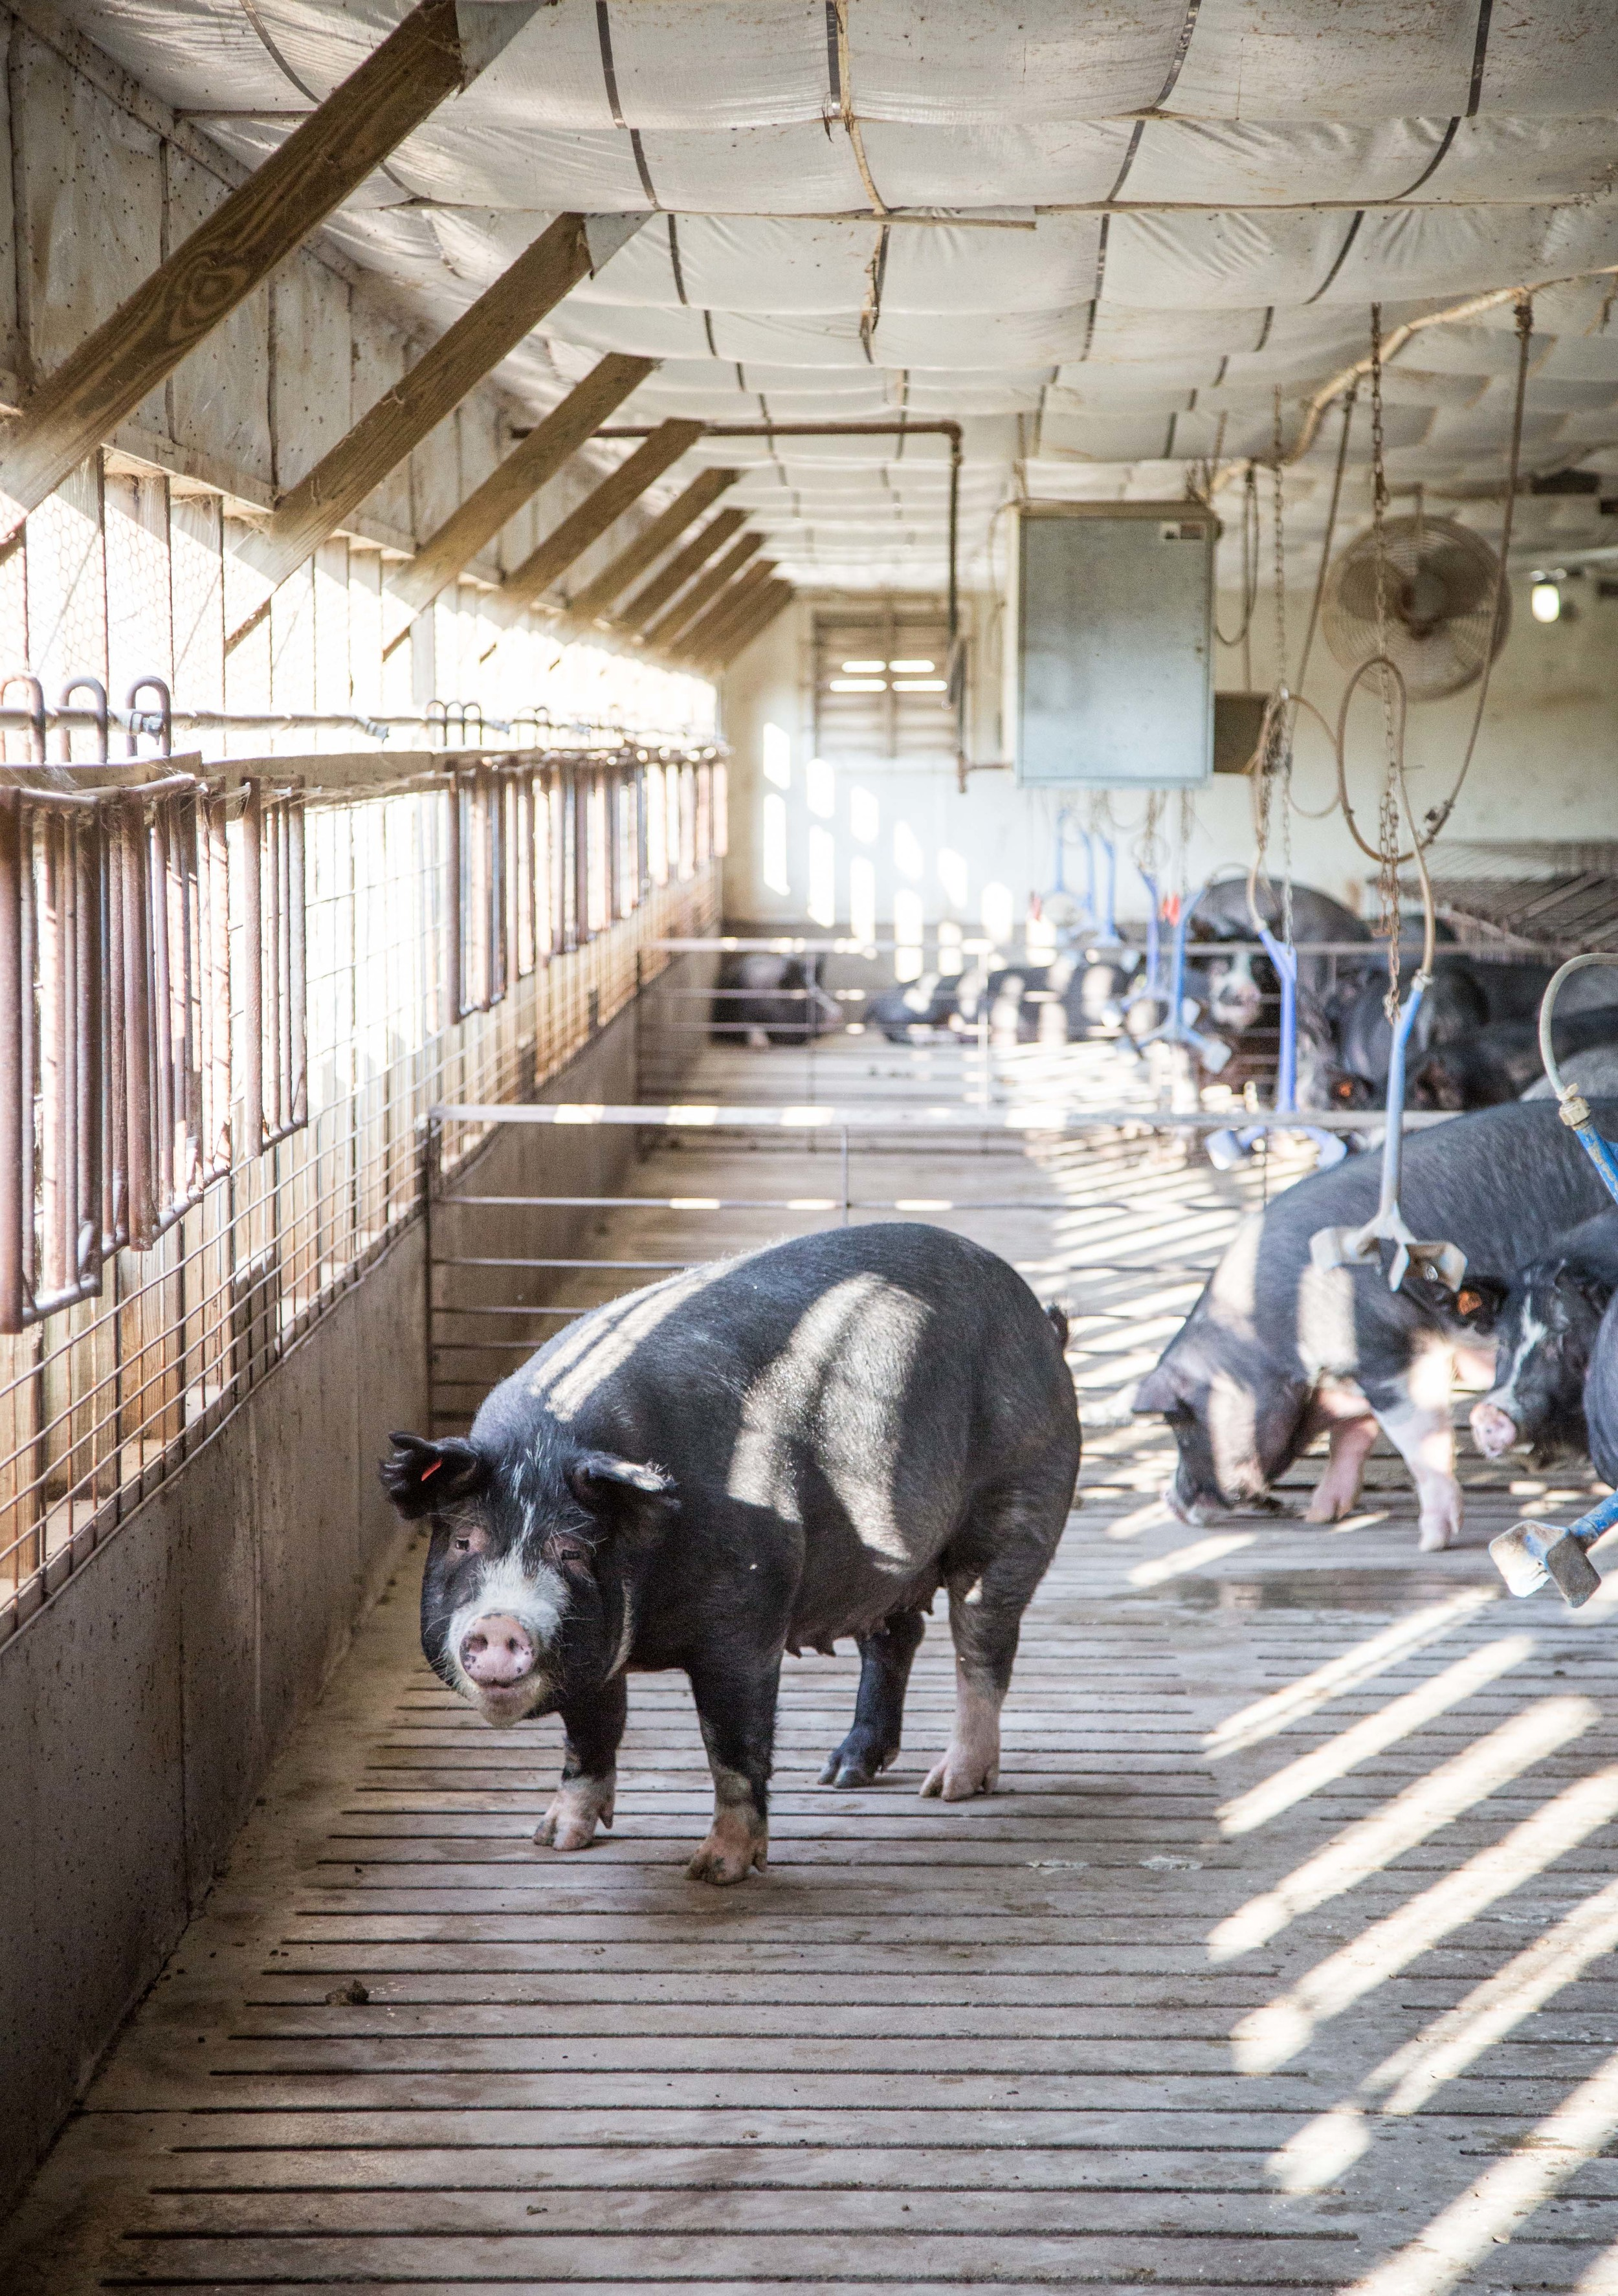 Sows (momma pigs) live in large spacious buildings called Gestation Barns before they give birth with other mommas. Pigs in these barns are not confined and are able to move about freely, while still being protected from the elements and in a safe place for farmers to handle them if need be.